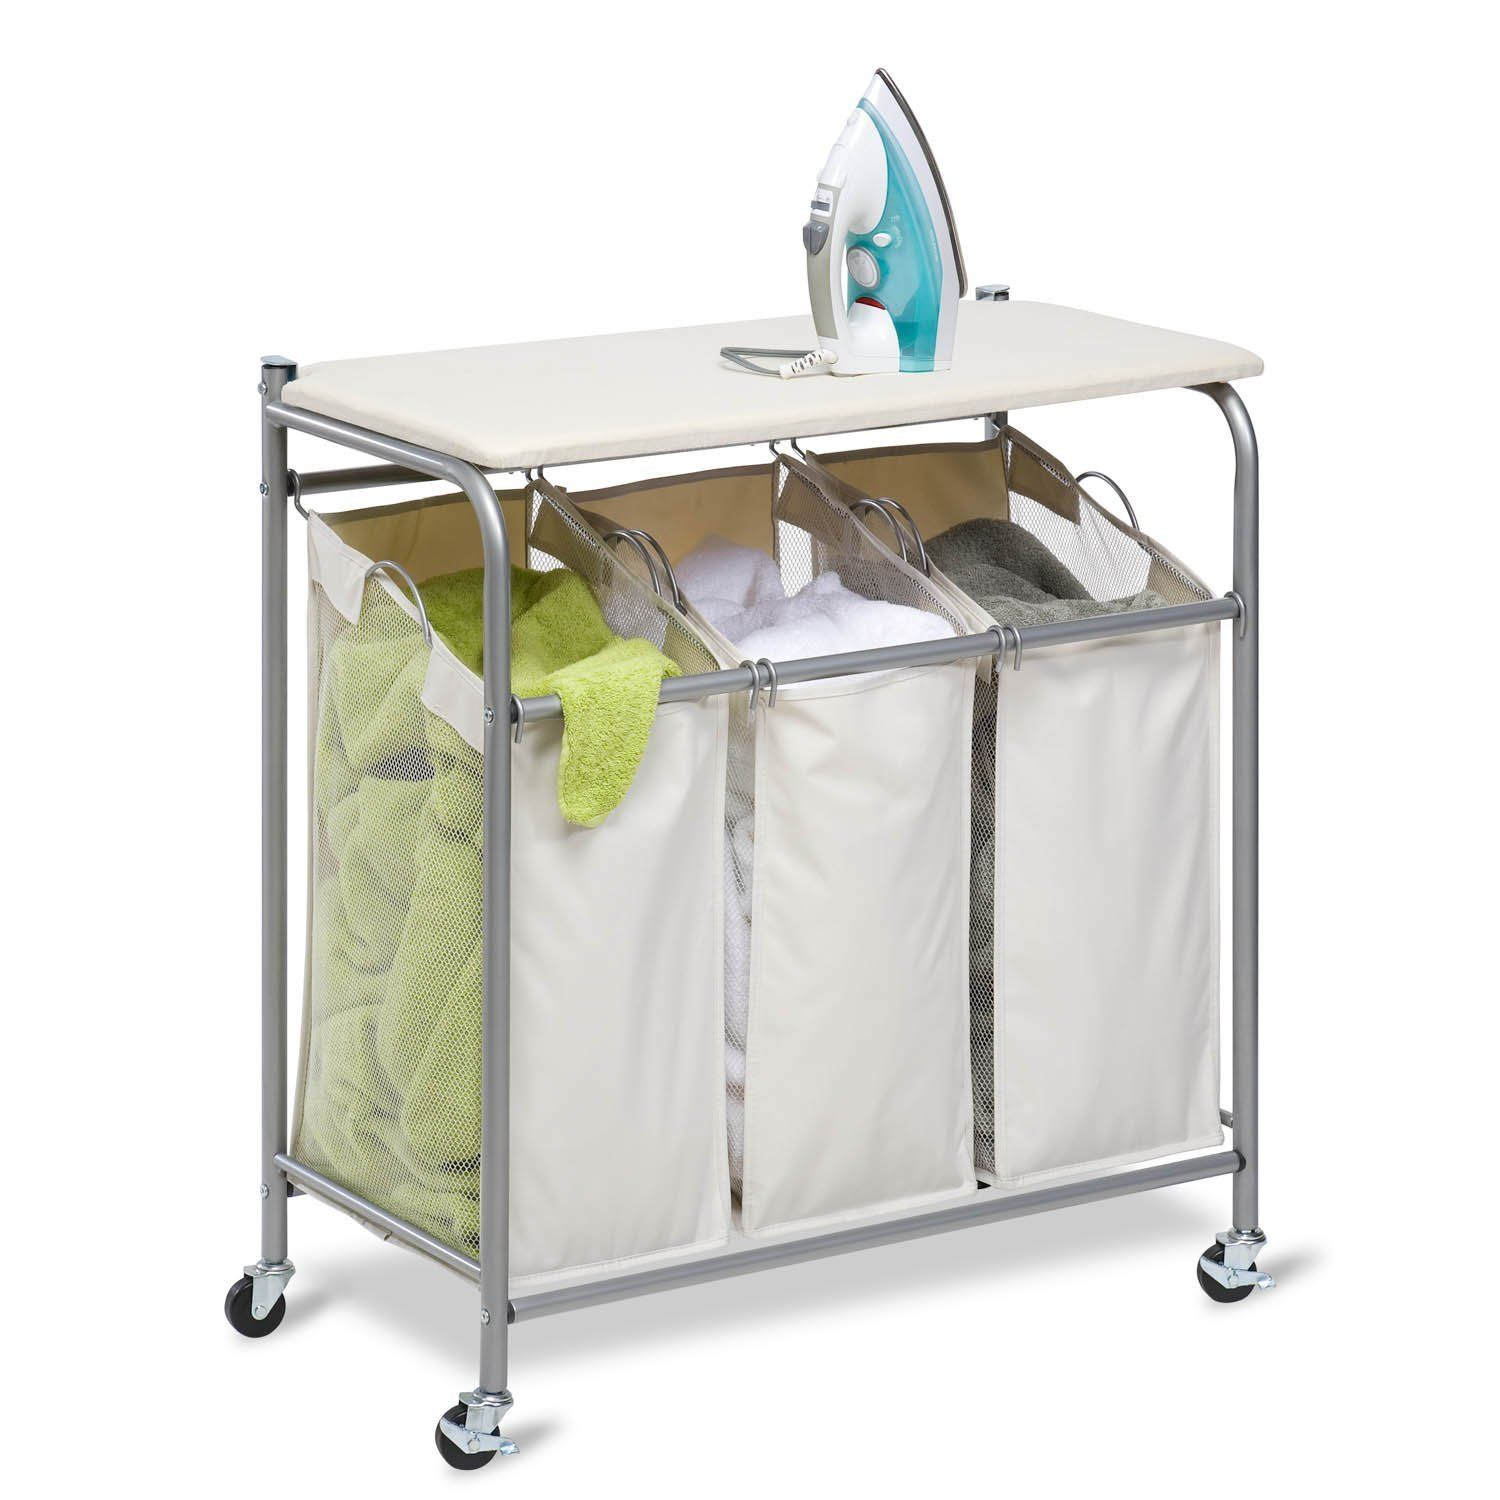 Triple Laundry Sorter With Lift Up Ironing Board